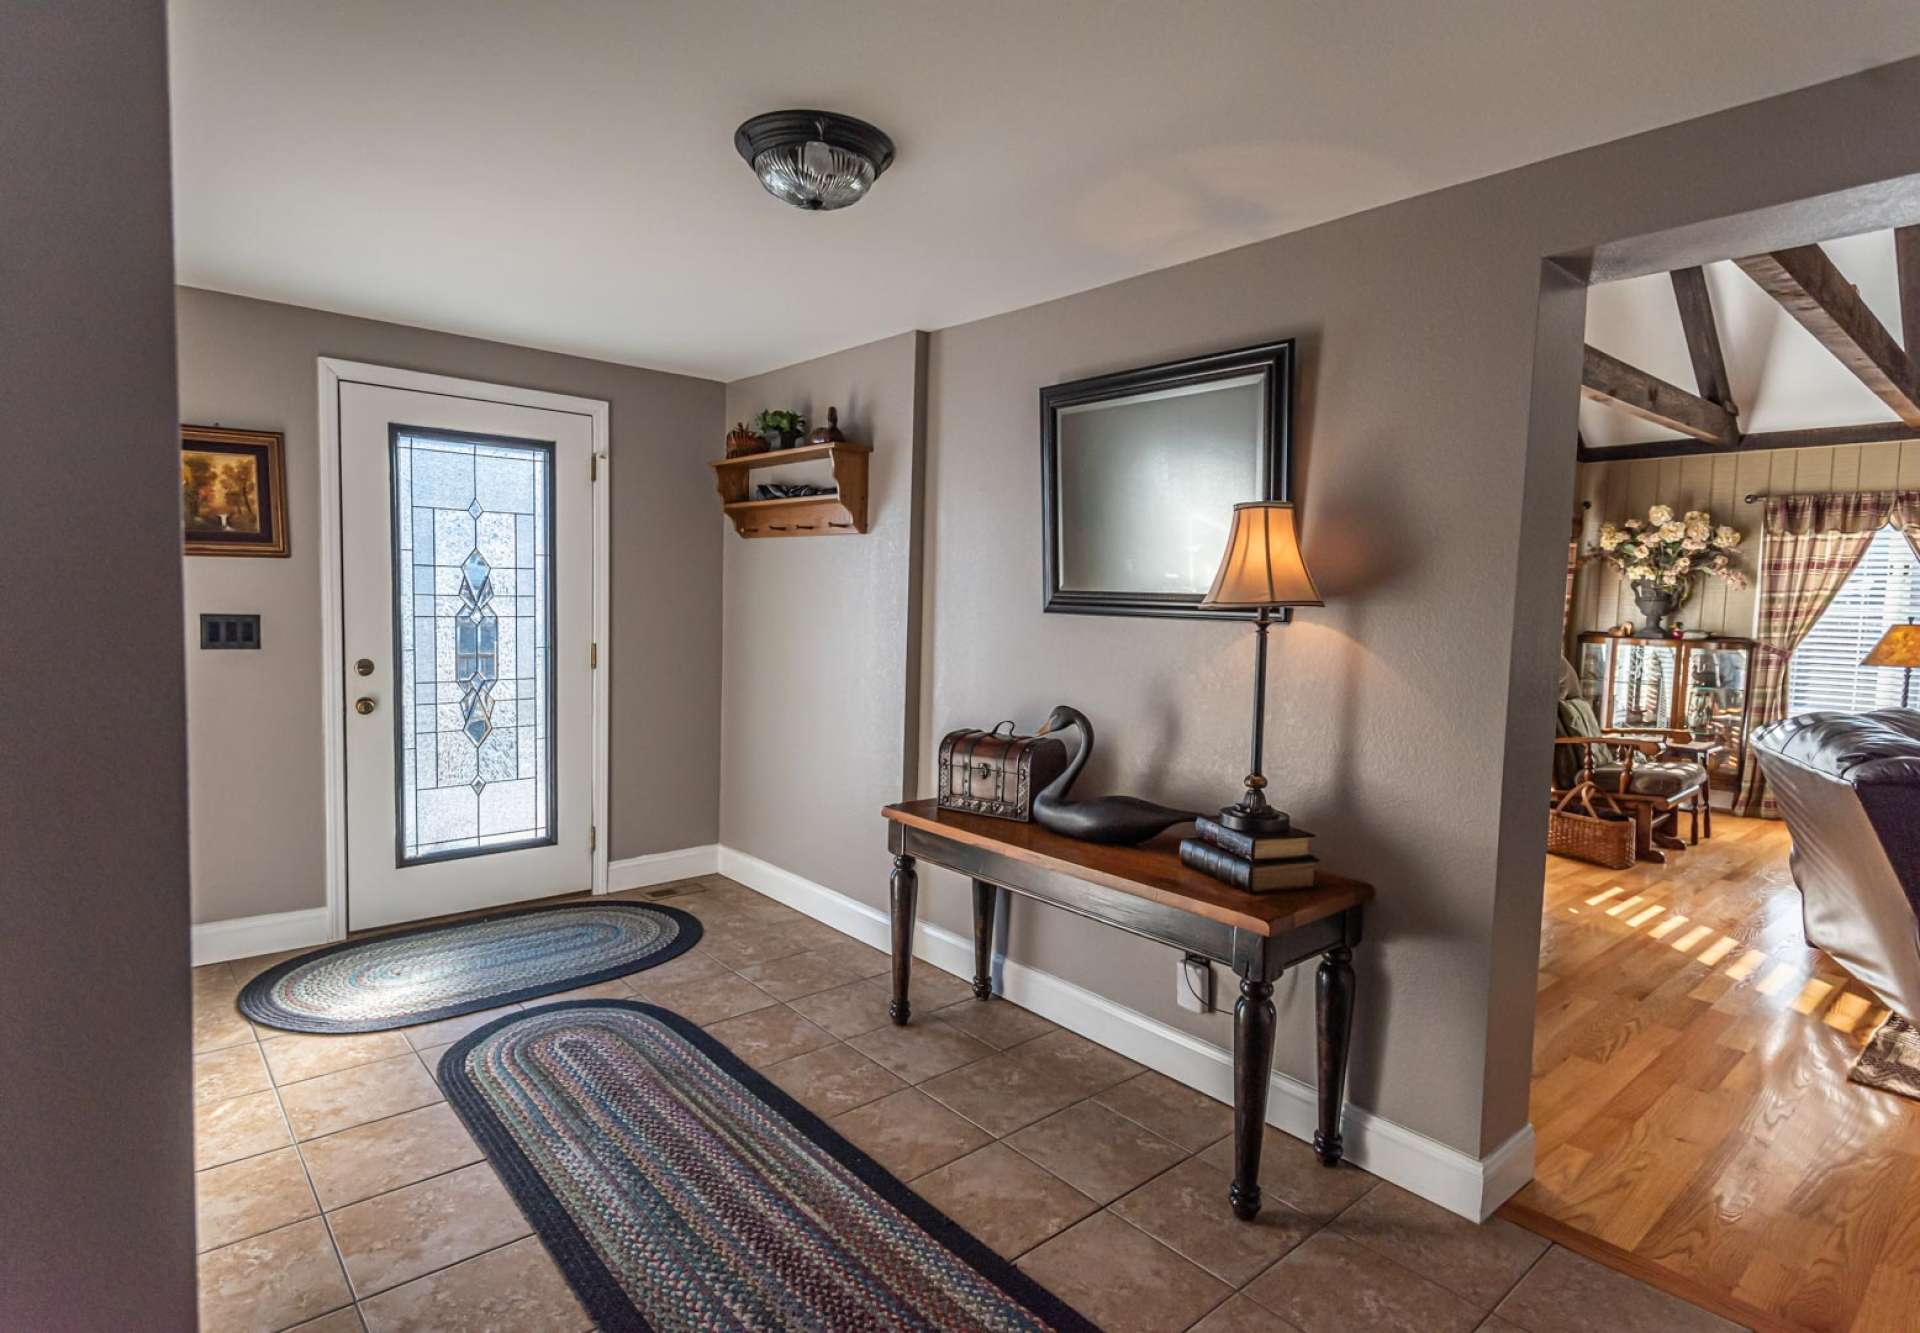 A foyer welcomes you inside to enjoy comfortable mountain living along with a totally renovated floor plan.